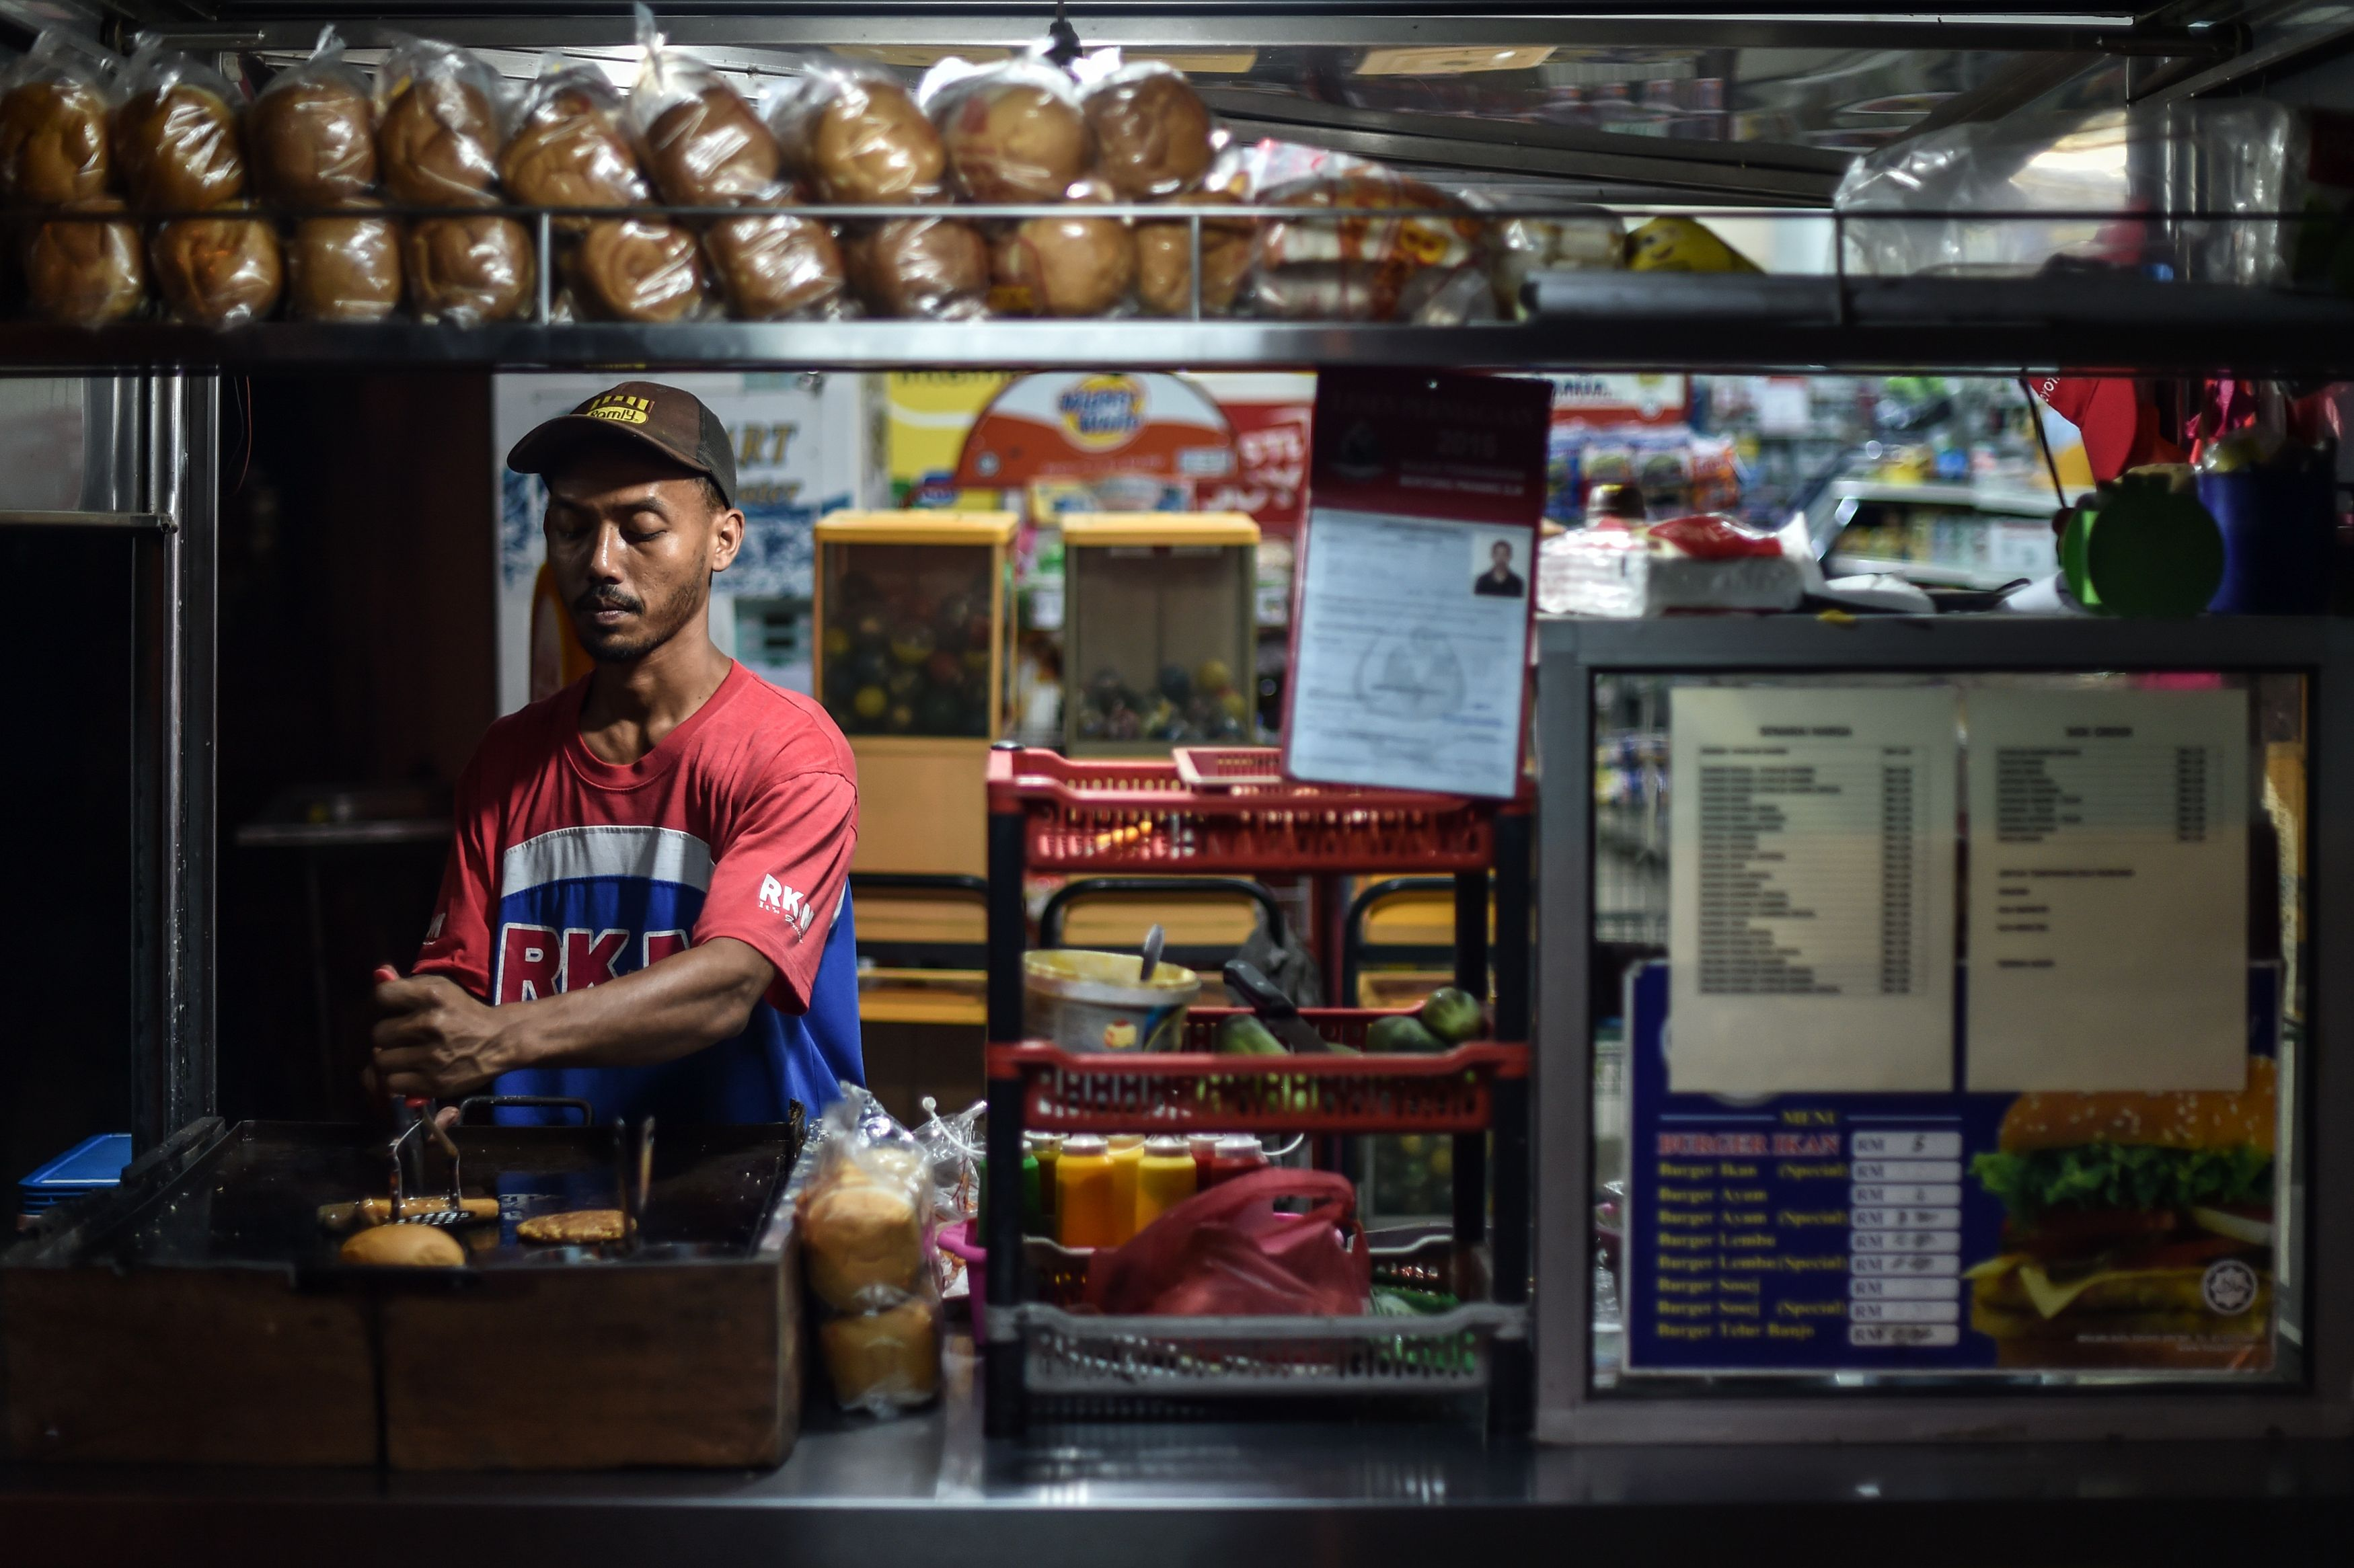 An employee cooks burgers and hotdogs at a roadside stall in Karak, outside Kuala Lumpur, on Oct. 18, 2016